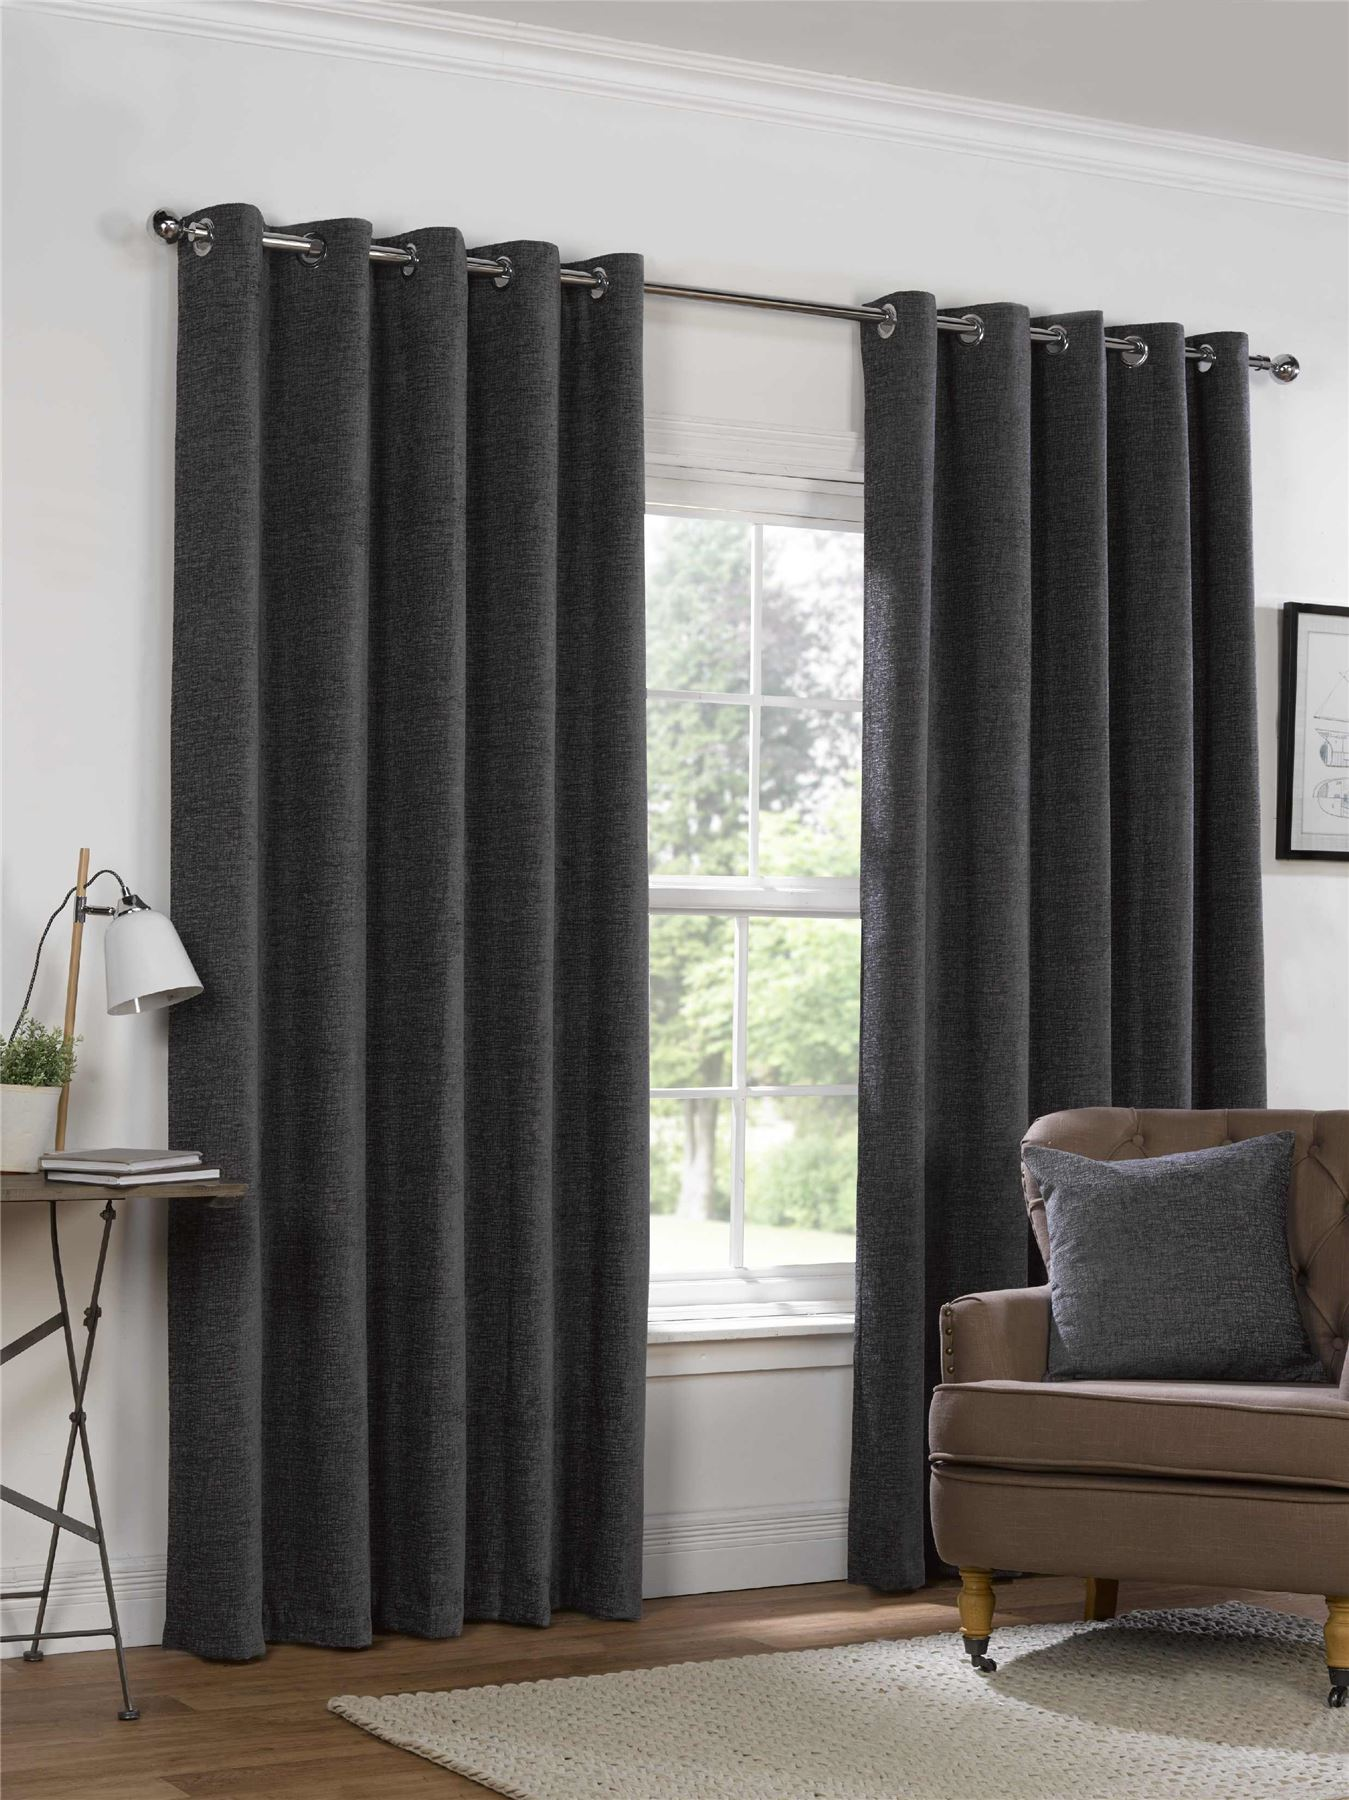 eyelet ring top curtains fully lined ready made heavy weight striped ebay. Black Bedroom Furniture Sets. Home Design Ideas